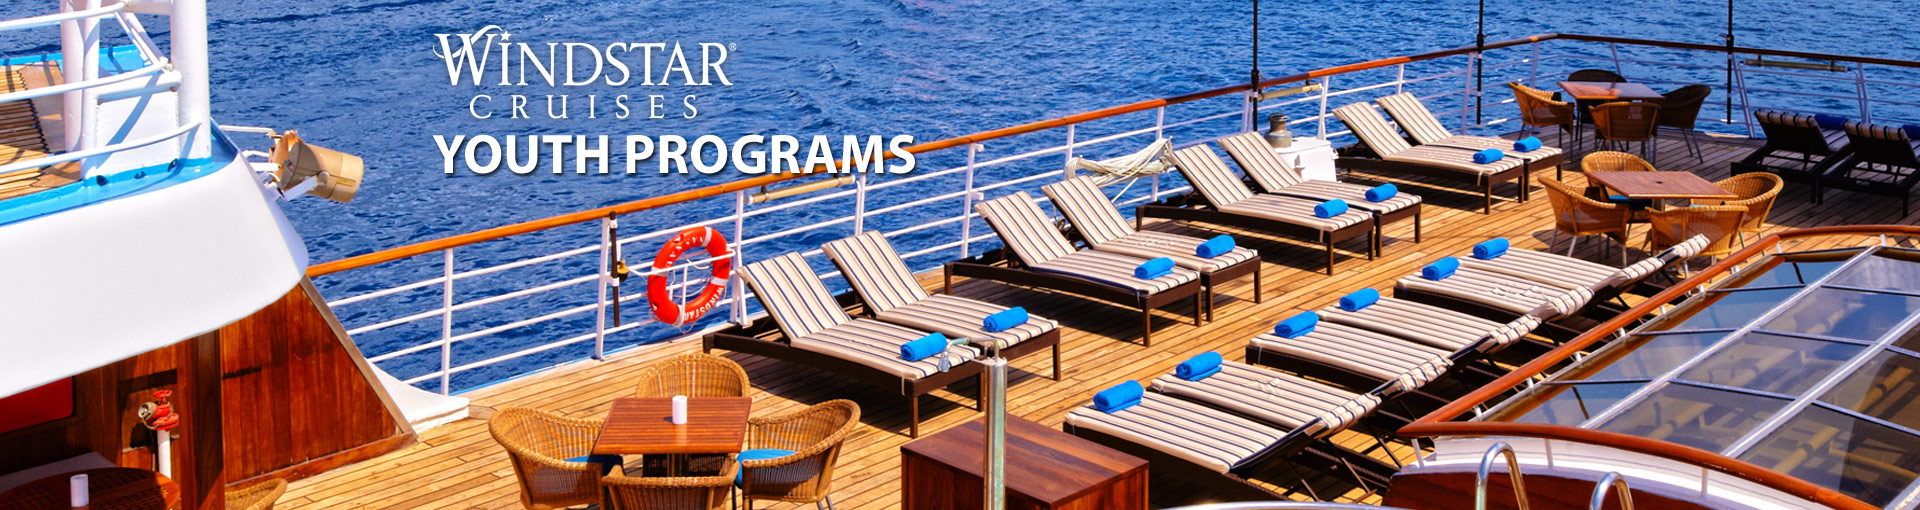 Windstar Cruises Youth Programs